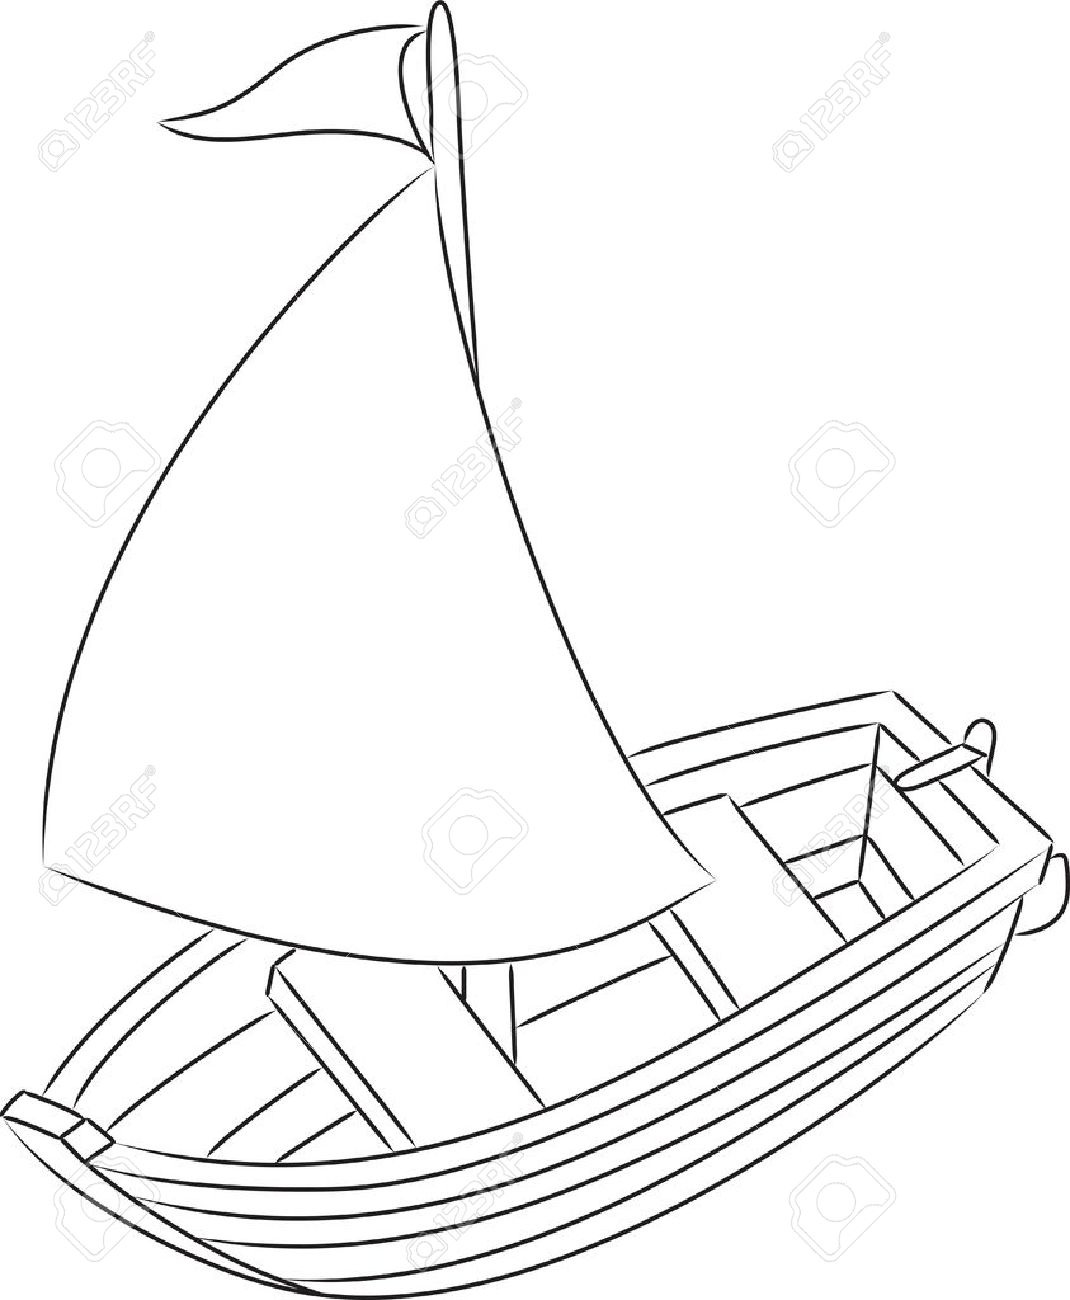 sailboat outlined vector illustration royalty free cliparts